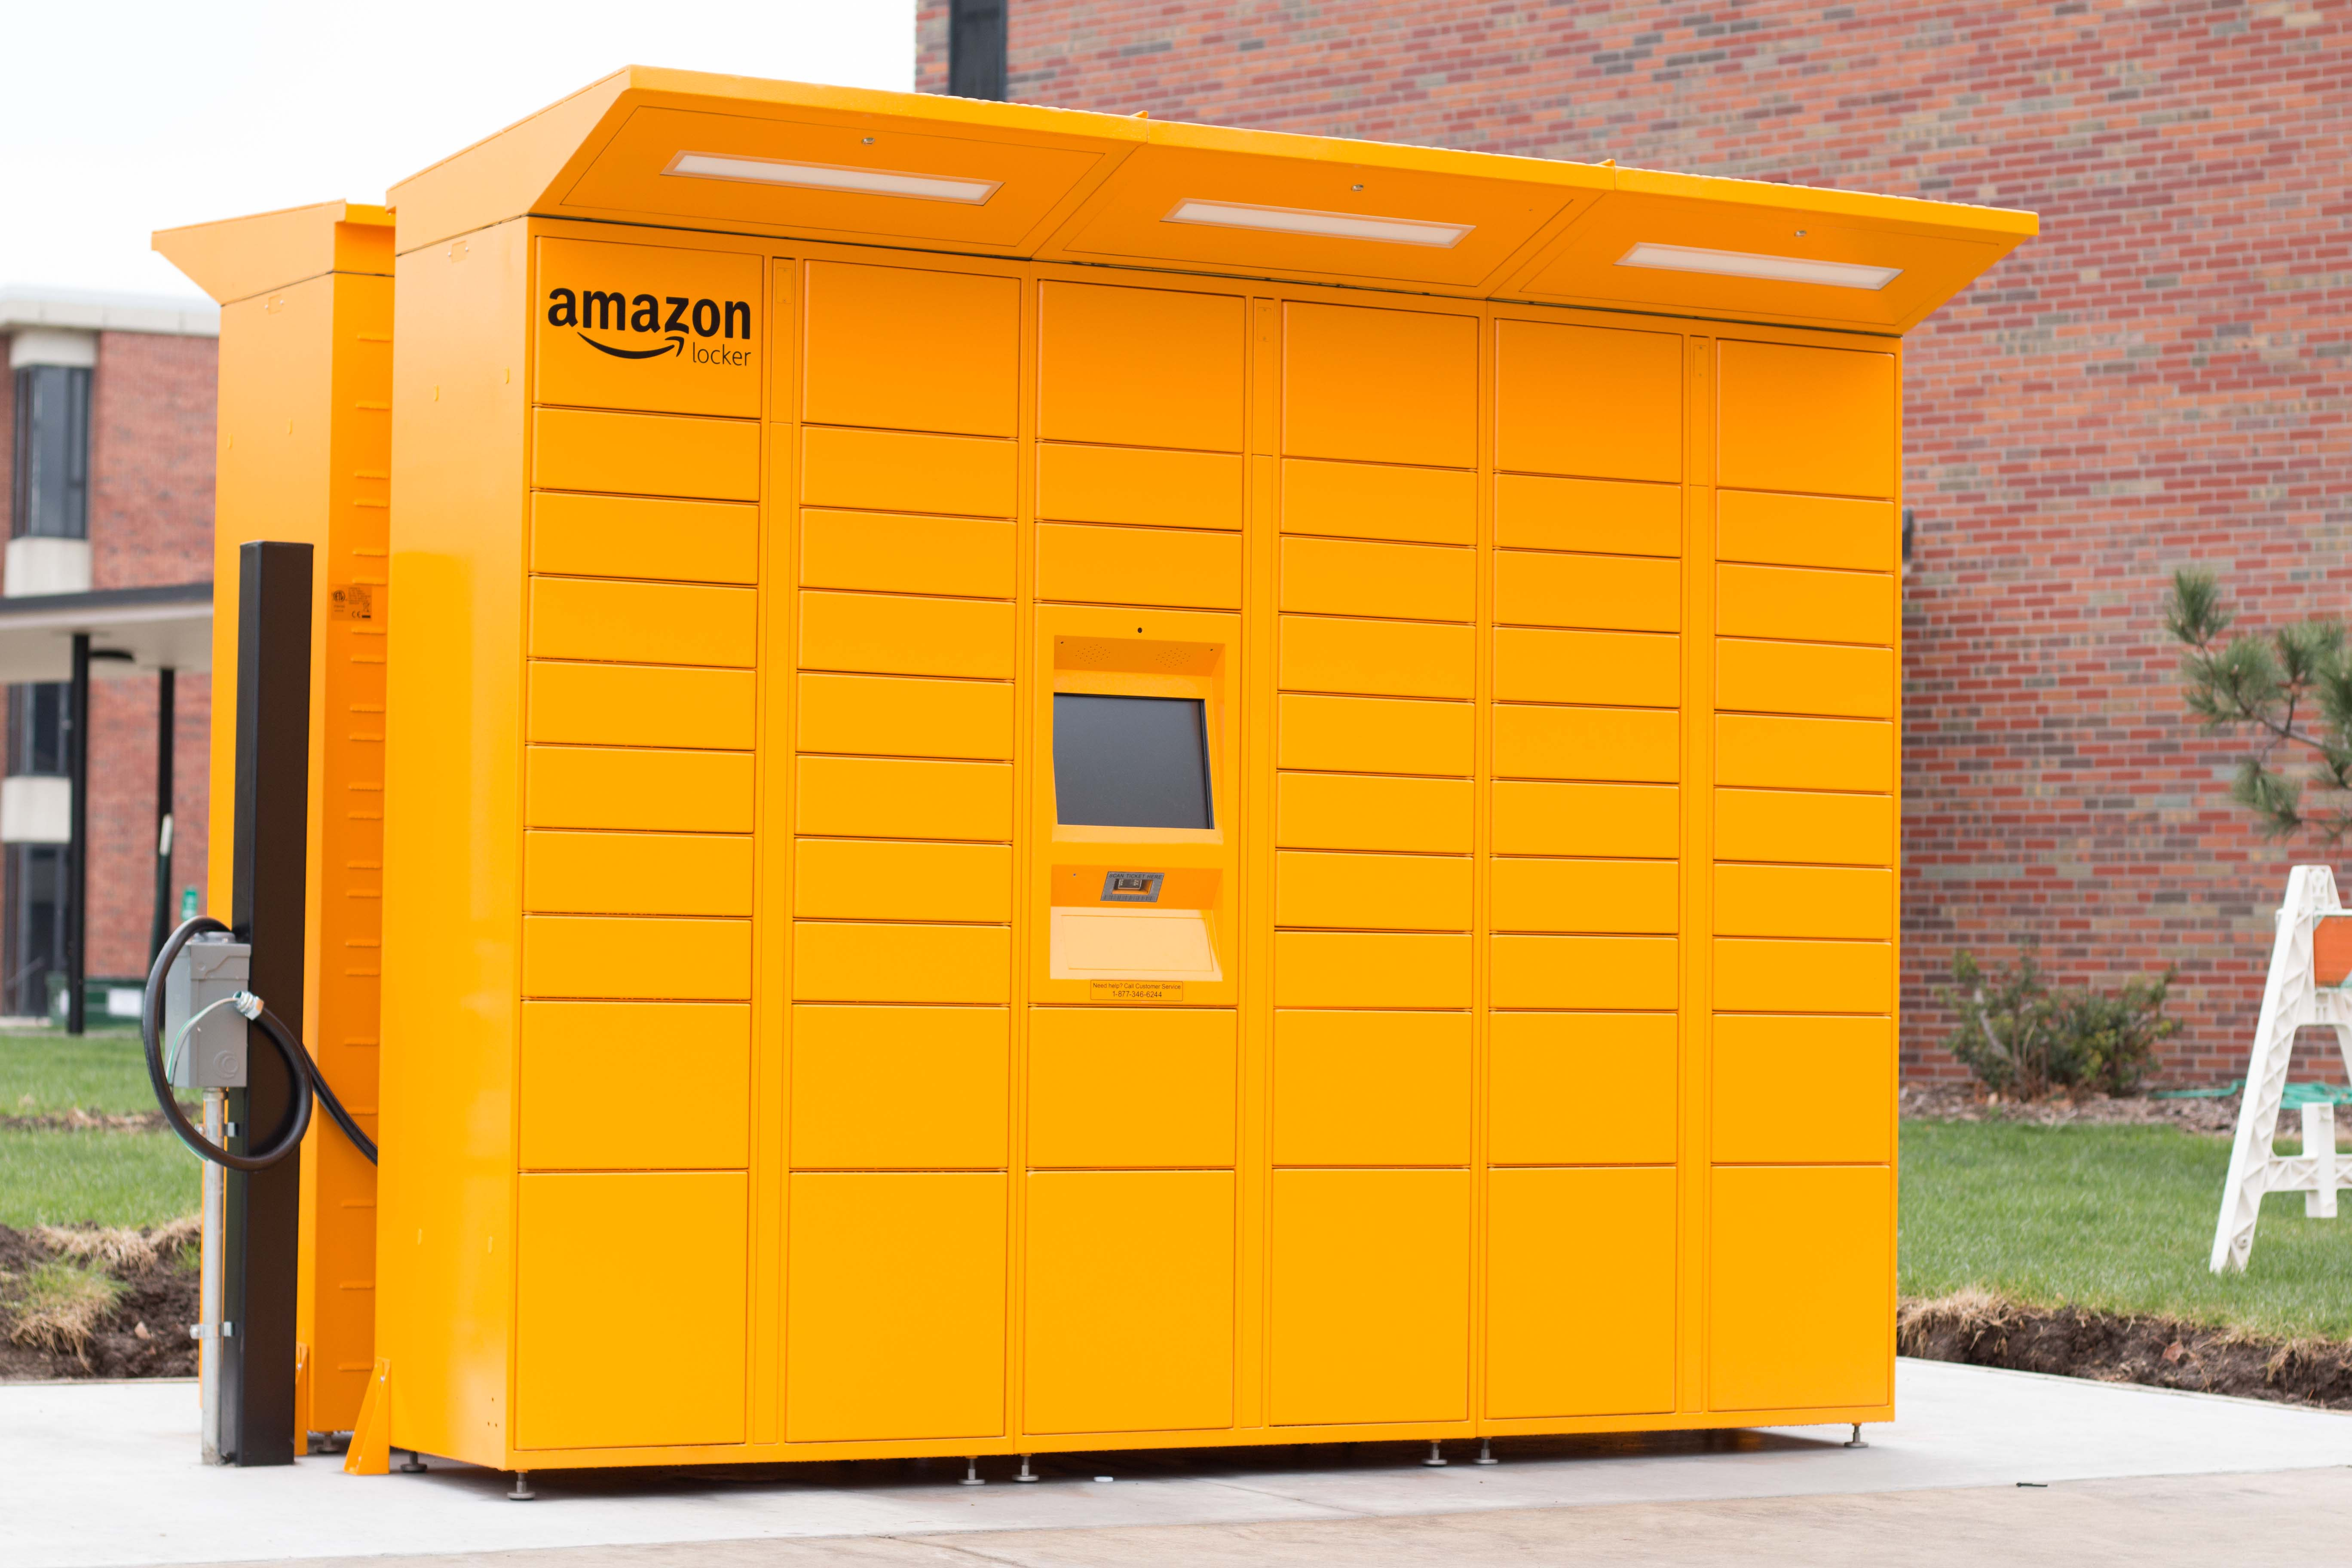 amazon lockers come to wichita state the sunflower. Black Bedroom Furniture Sets. Home Design Ideas